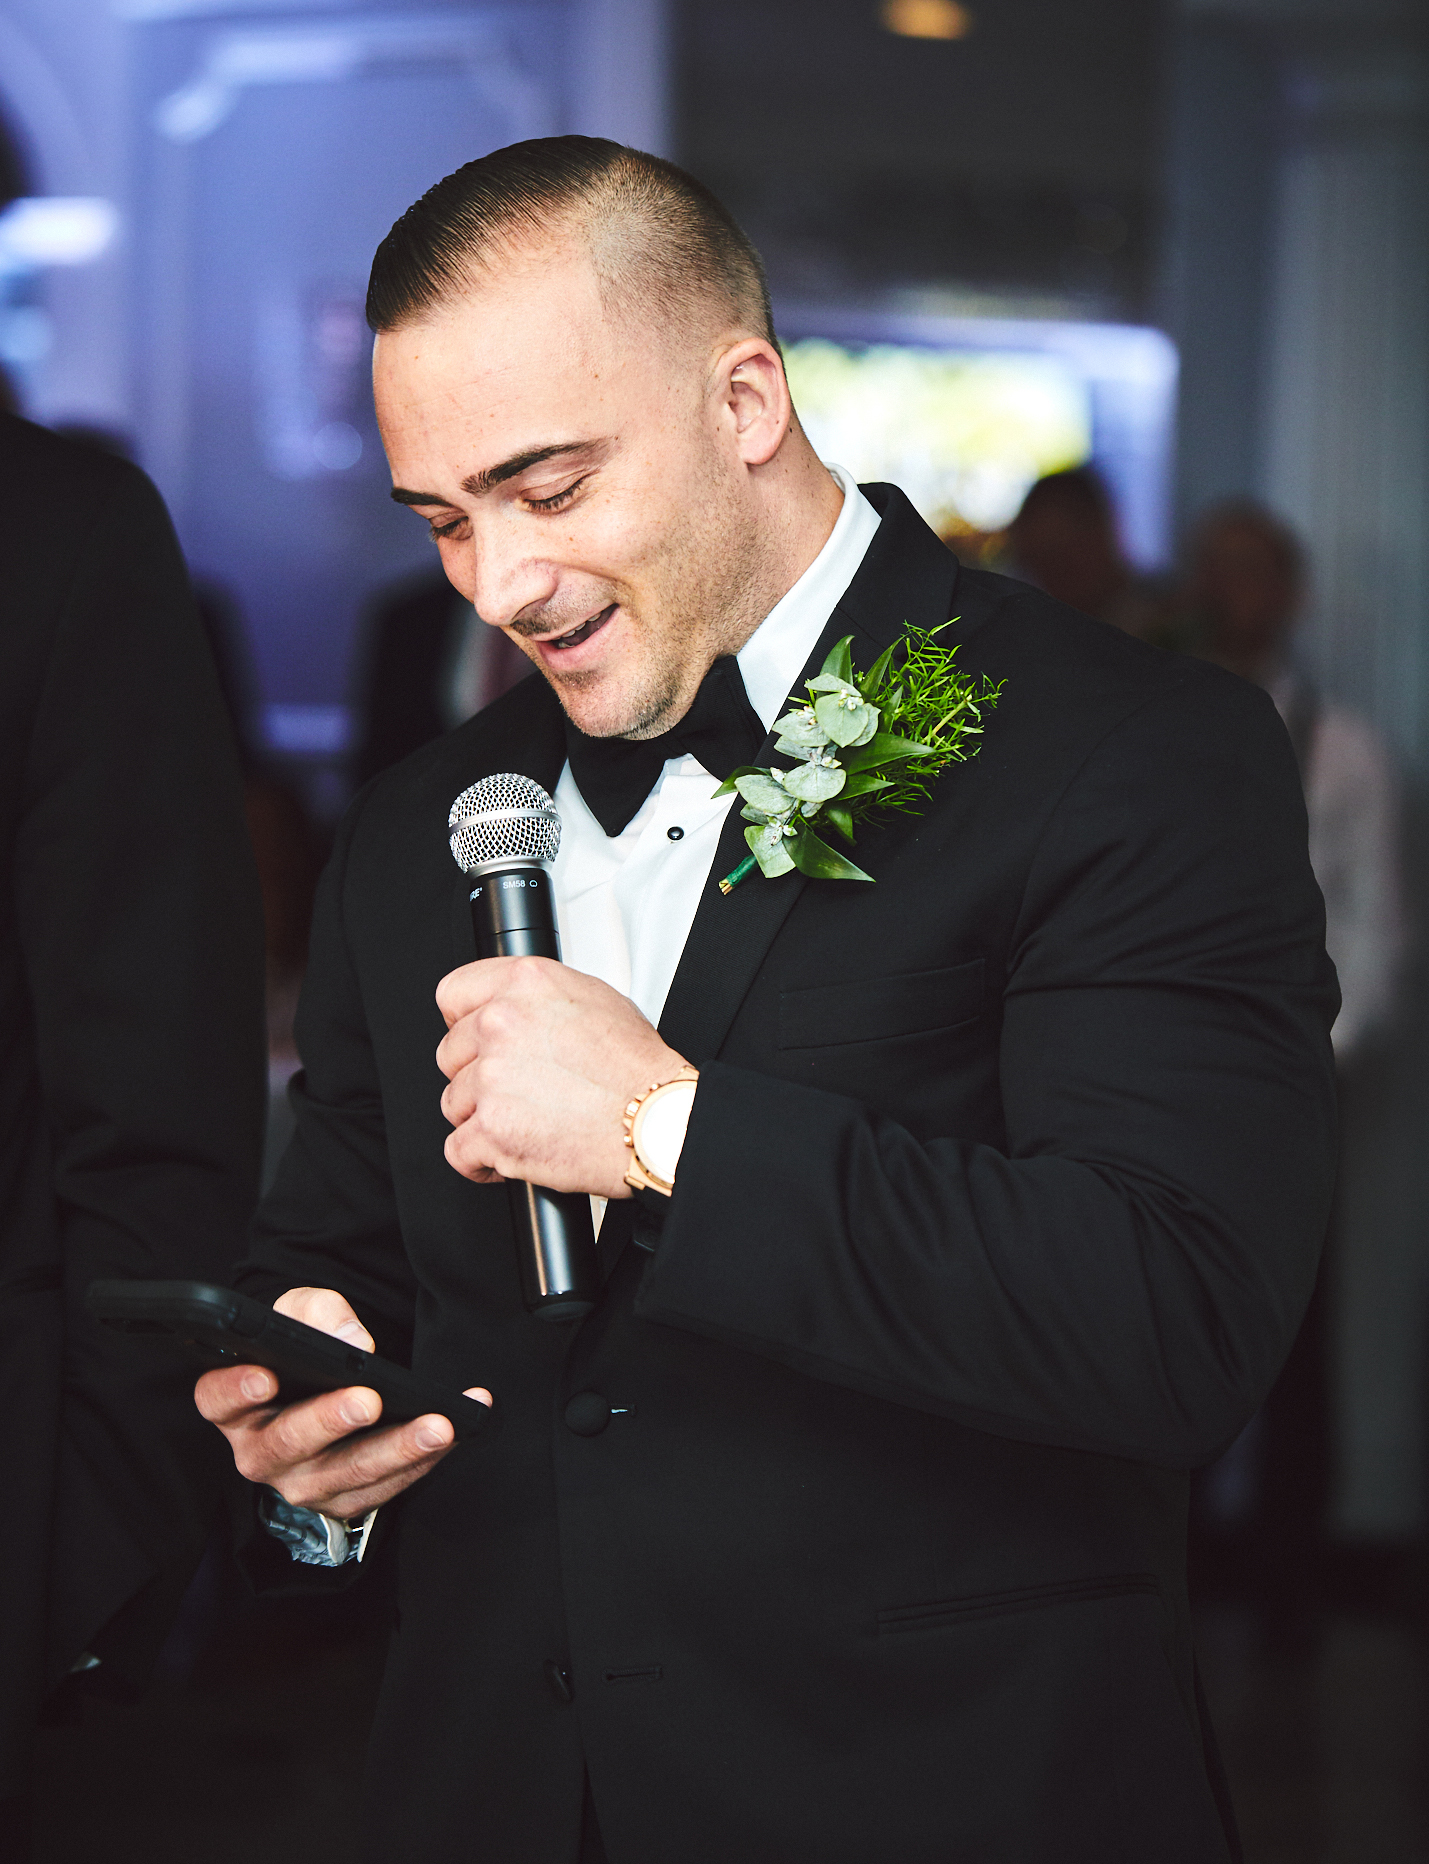 190628_SummerStatenIslandWeddingPhotography_By_BriJohnsonWeddings_0140.jpg